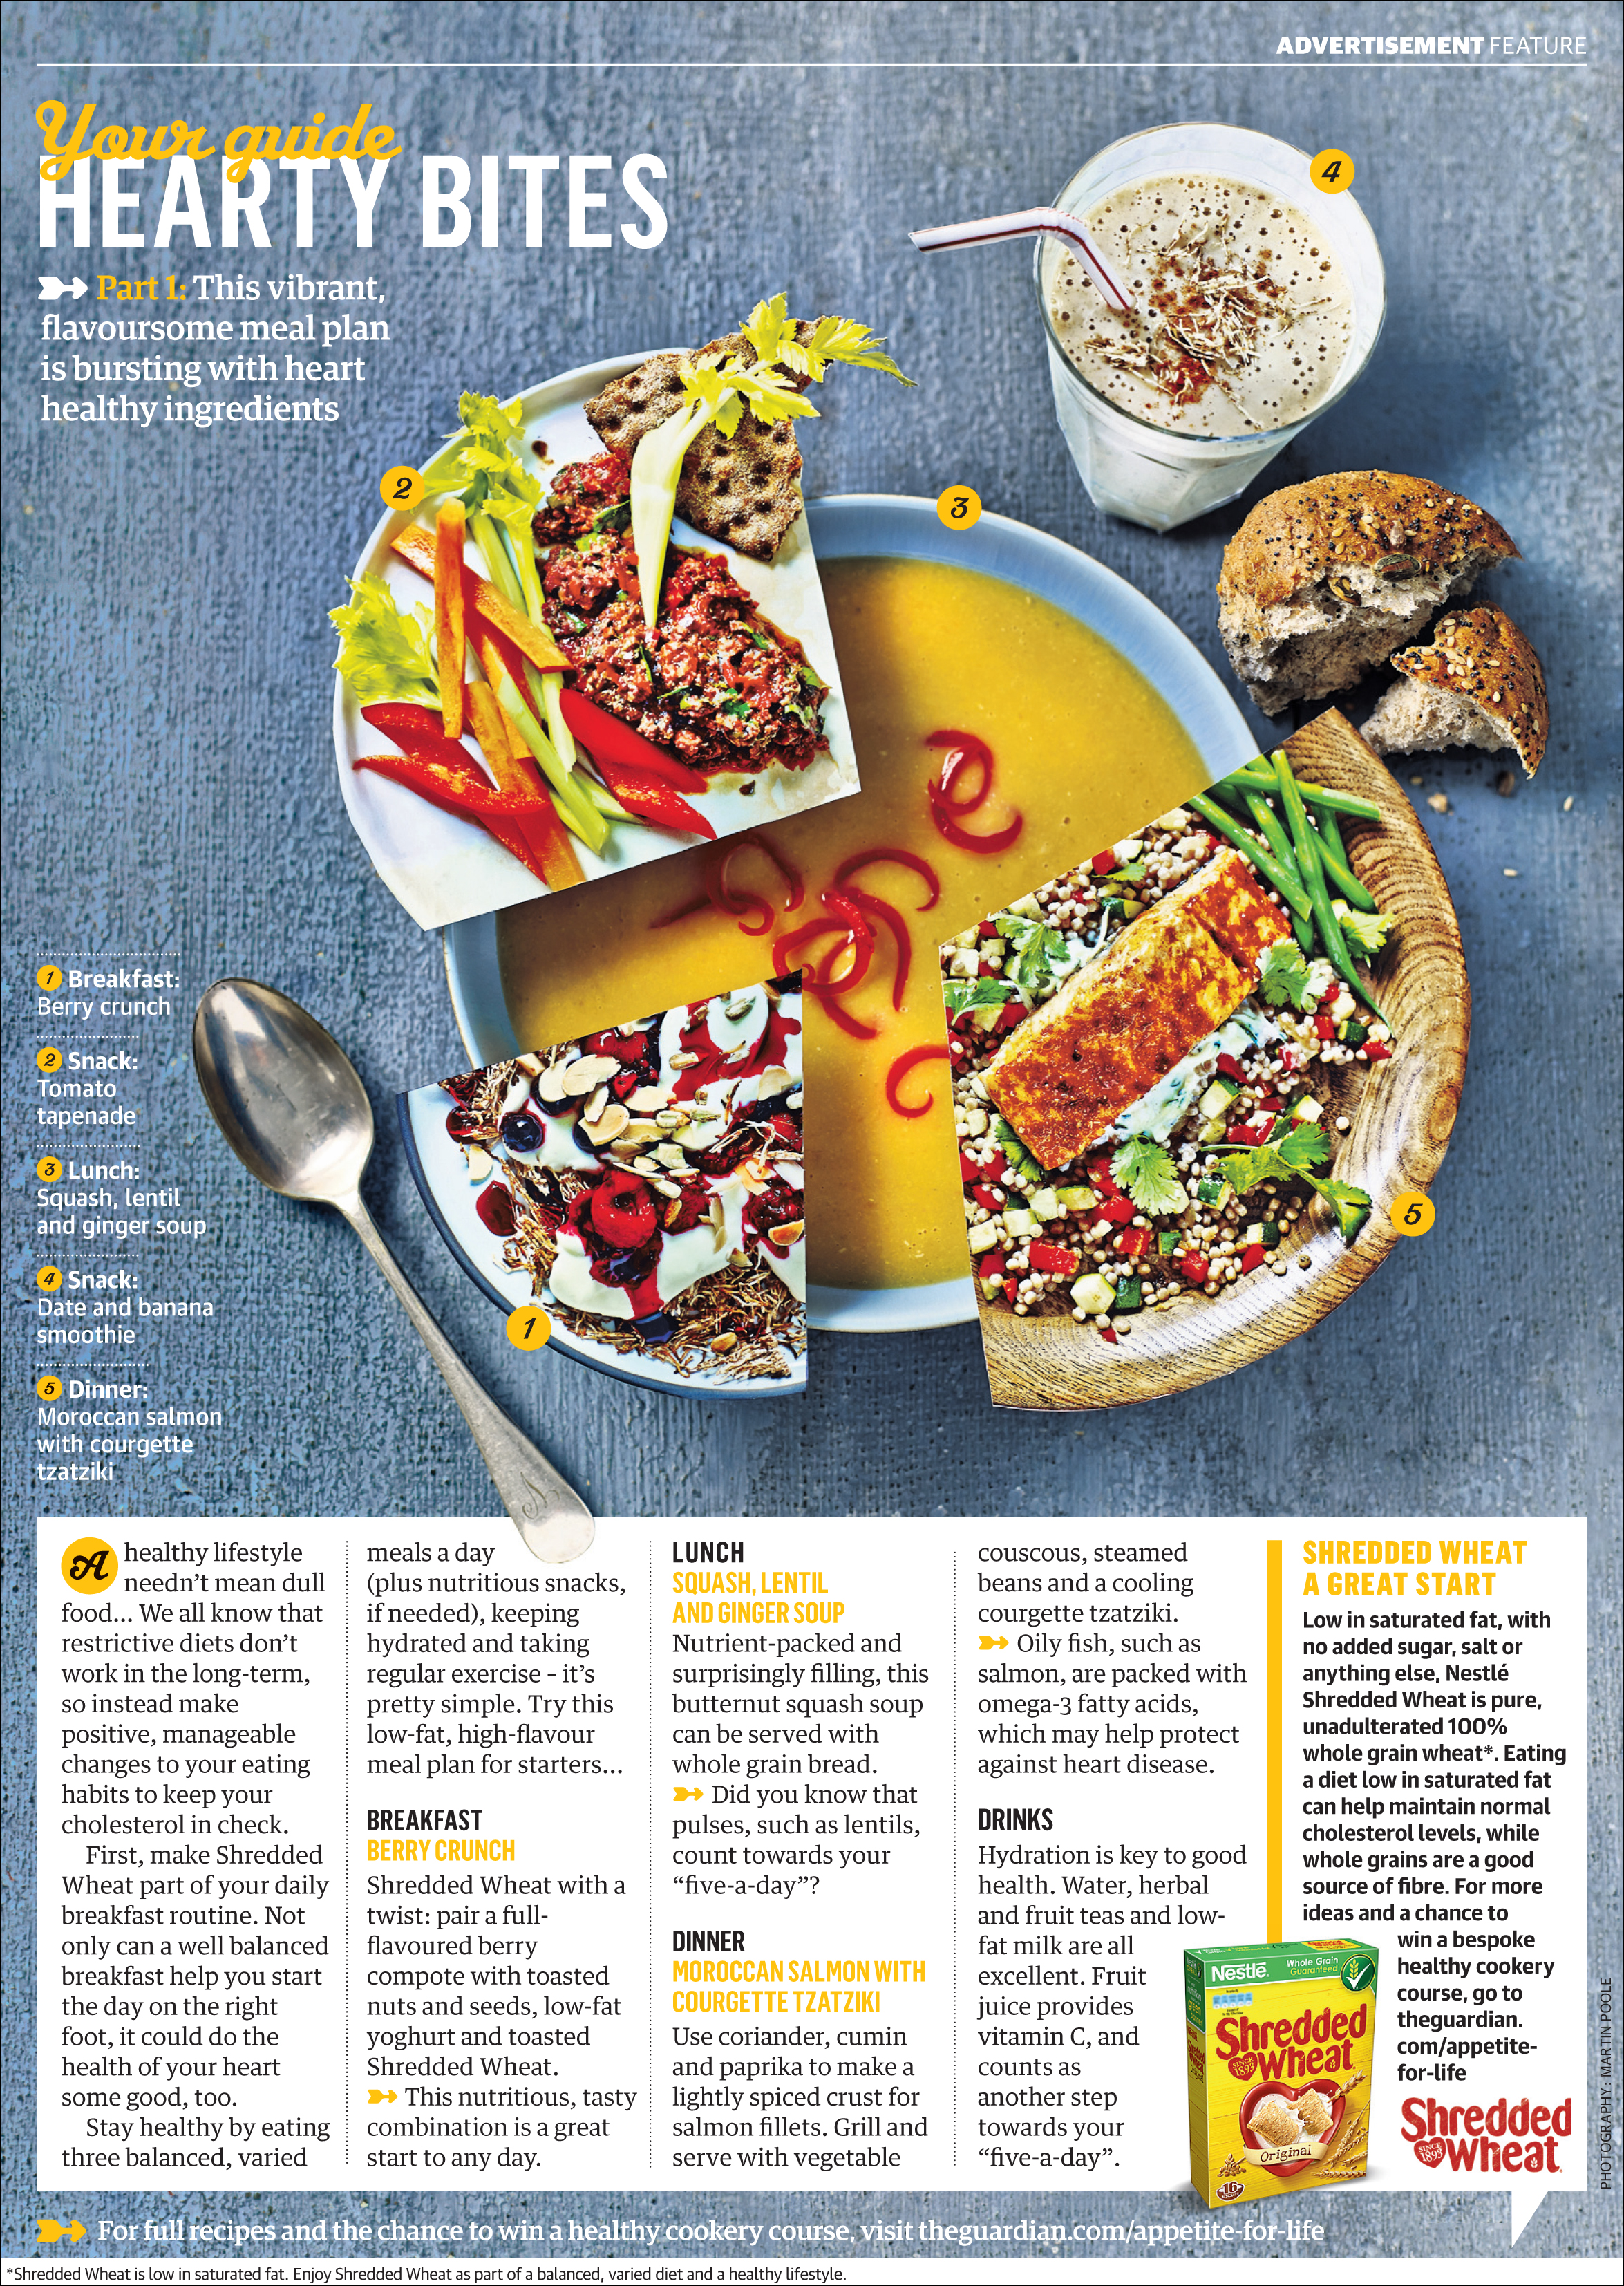 Finished advertorial in Guardian Cook supplement, Feb 2014.